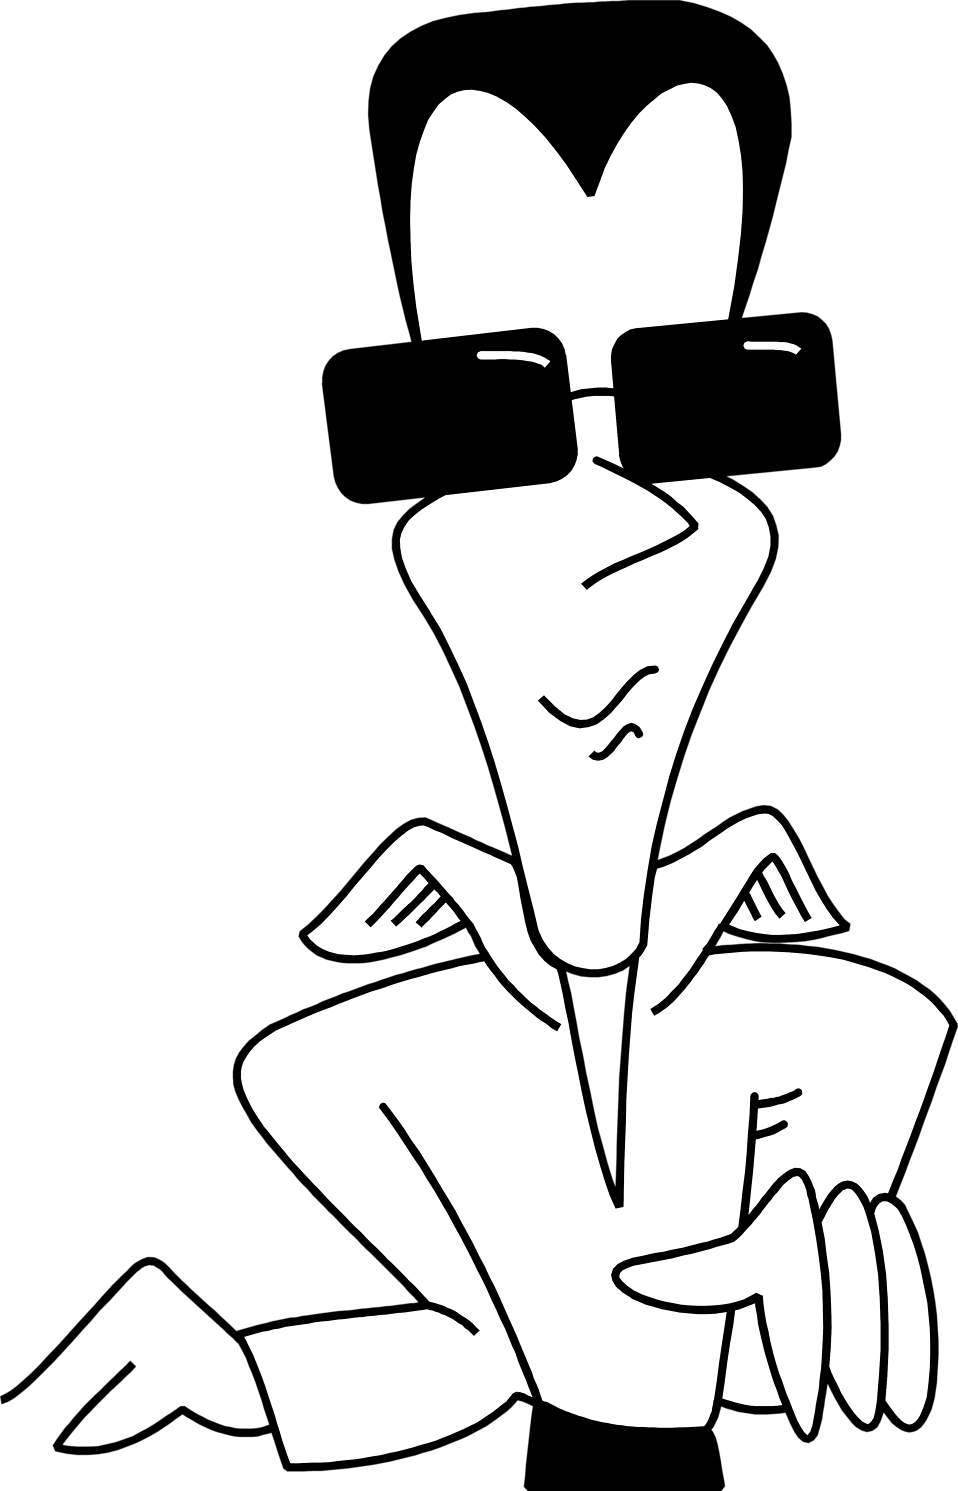 collection of drawing. Clipart sunglasses cool guy